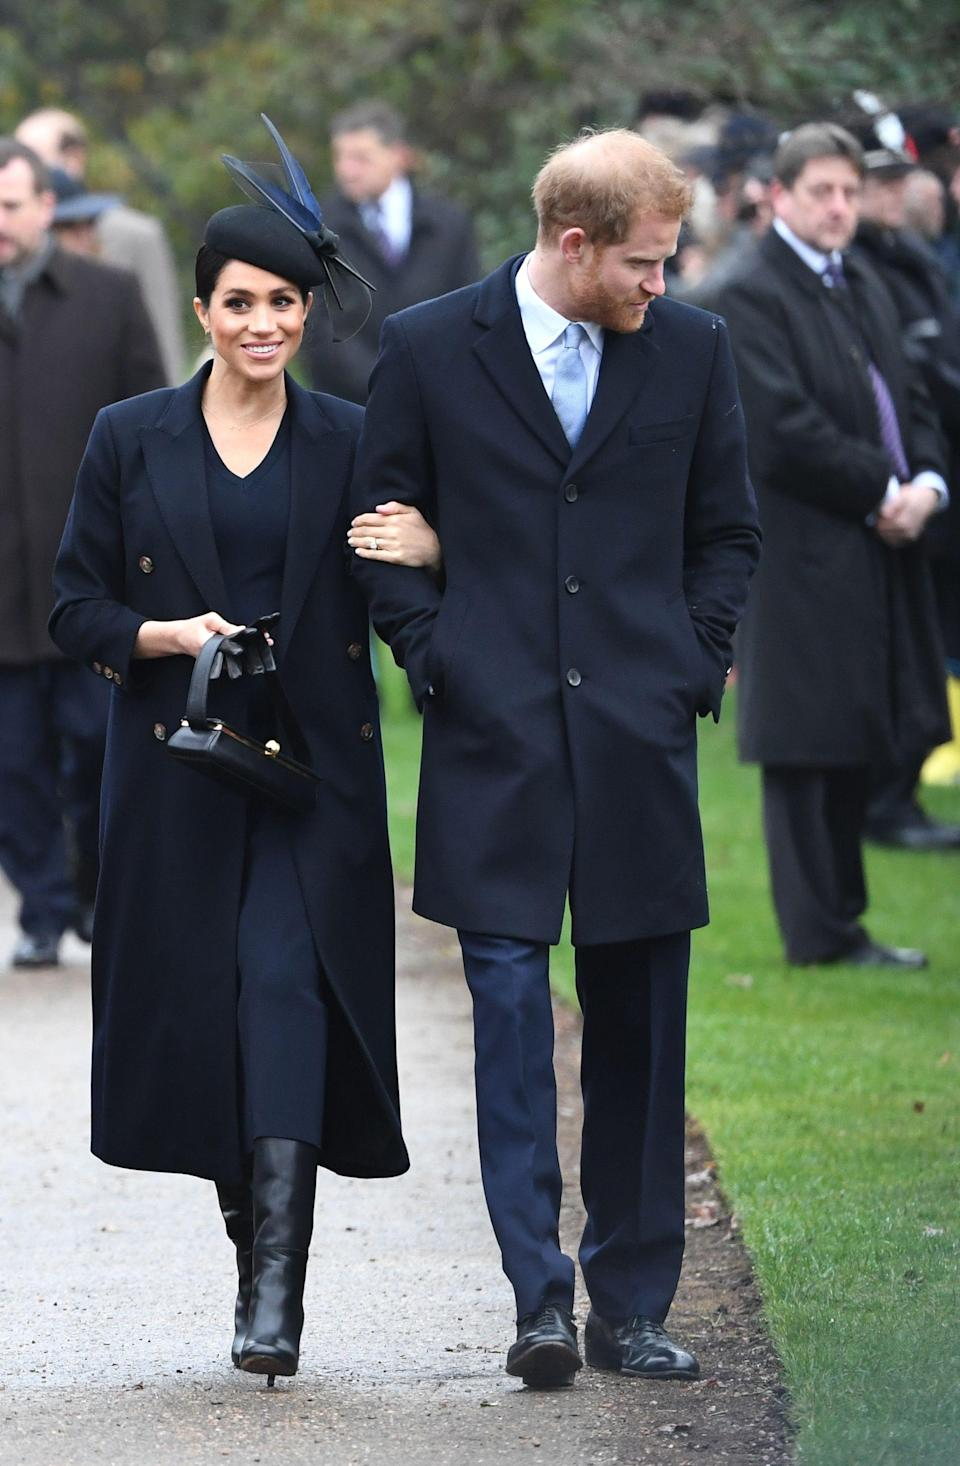 <p>On Christmas Day 2018, the 37-year-old wore a £1,250 woollen dress by Victoria Beckham to church. She teamed the tailored number with a £1,550 structured box bag and a slim coat (both also by the British designer). An Awon Golding hat completed the festive ensemble. <em>[Photo: Getty]</em> </p>